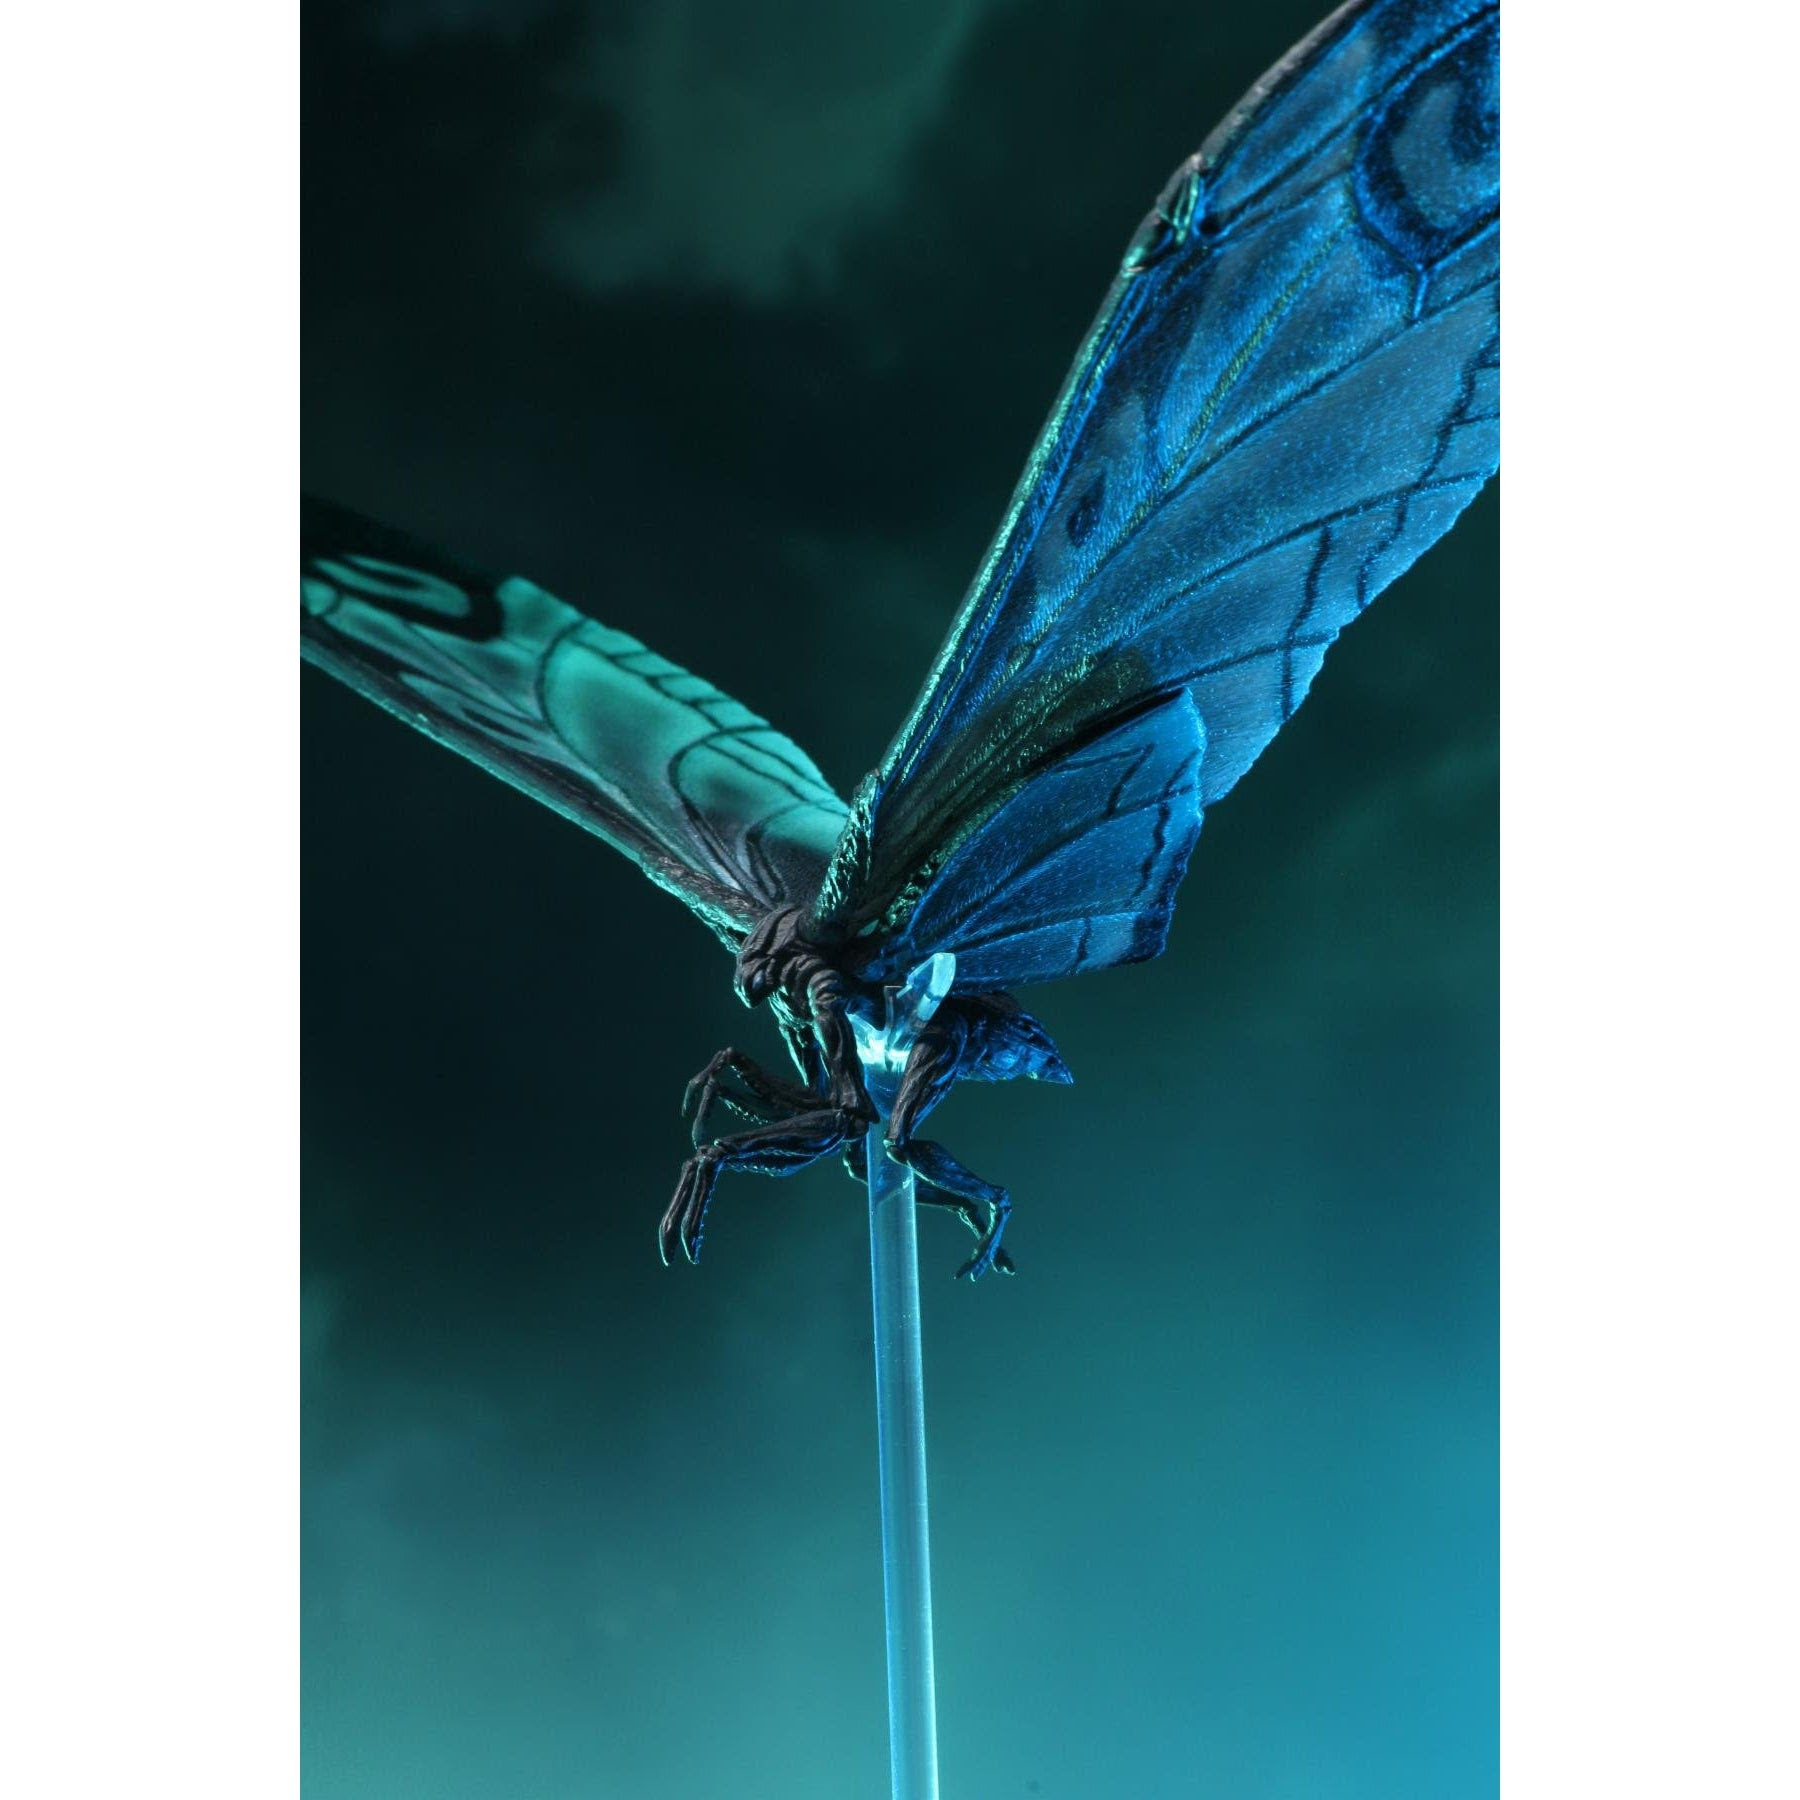 """Image of Godzilla - King of Monsters - 12"""" Wing-to-Wing Action Figure - Mothra """"Poster Version""""- MAY 2020"""